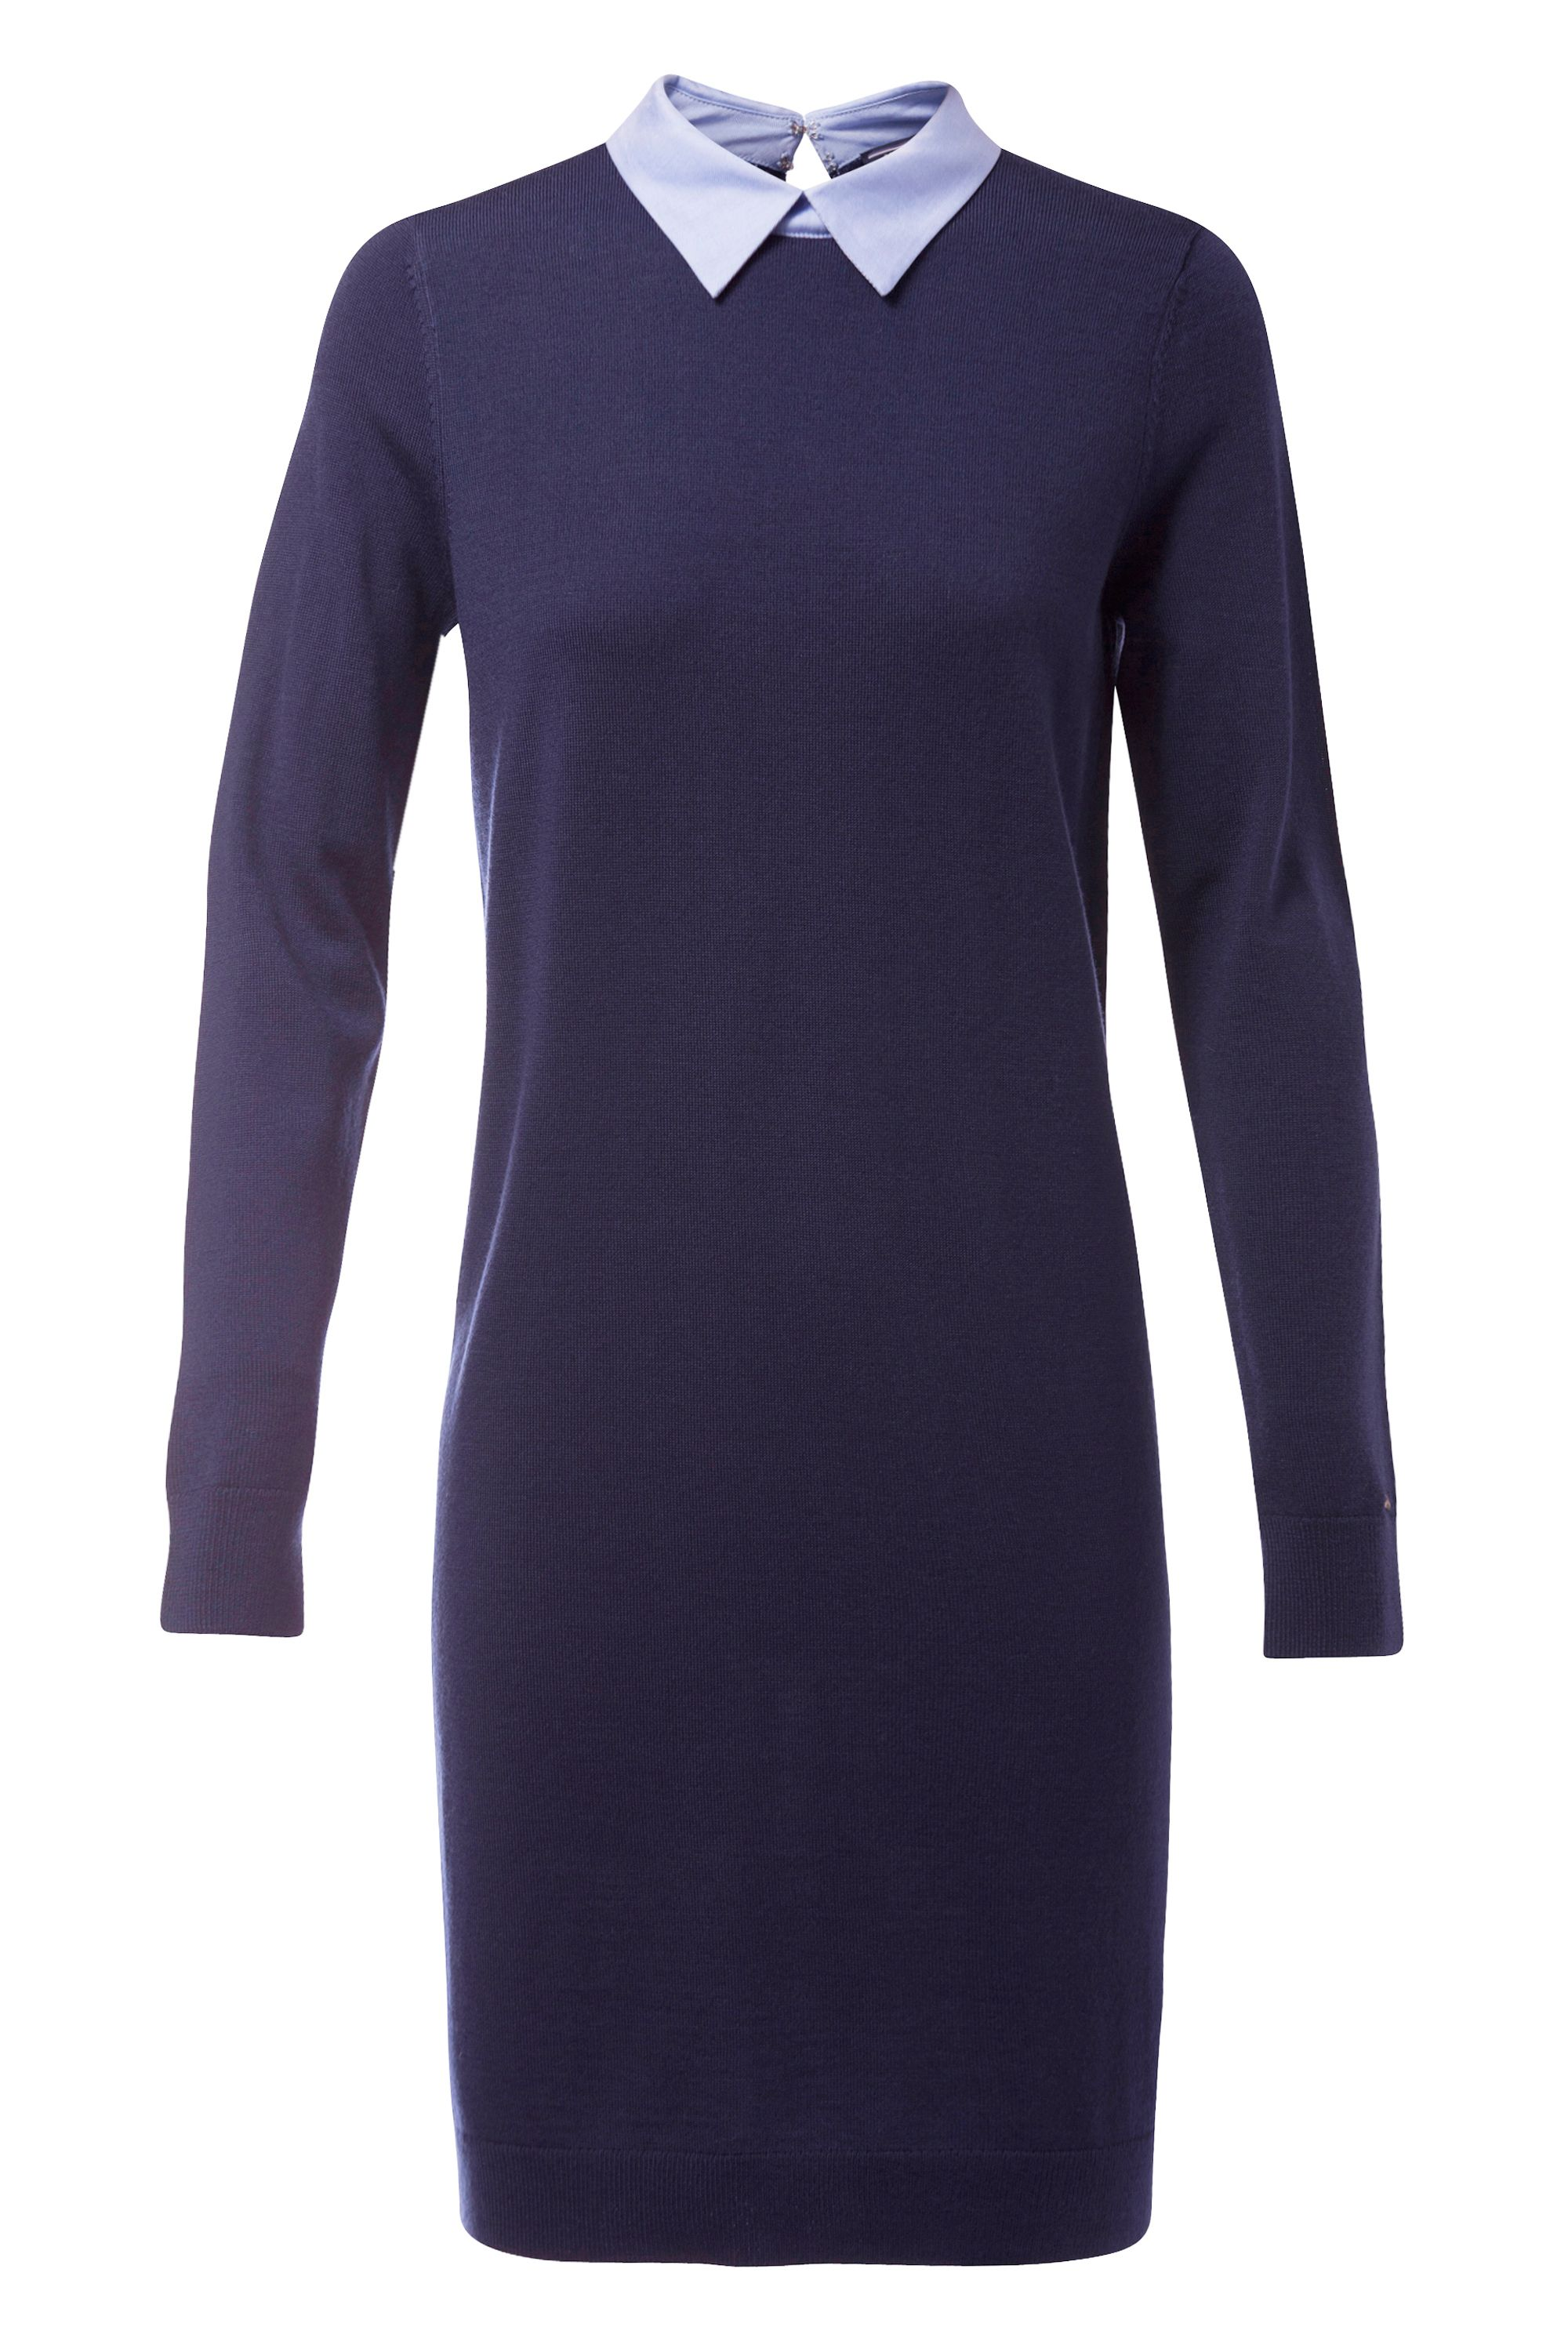 Tommy Hilfiger Elga Oxford Detail Dress, Blue